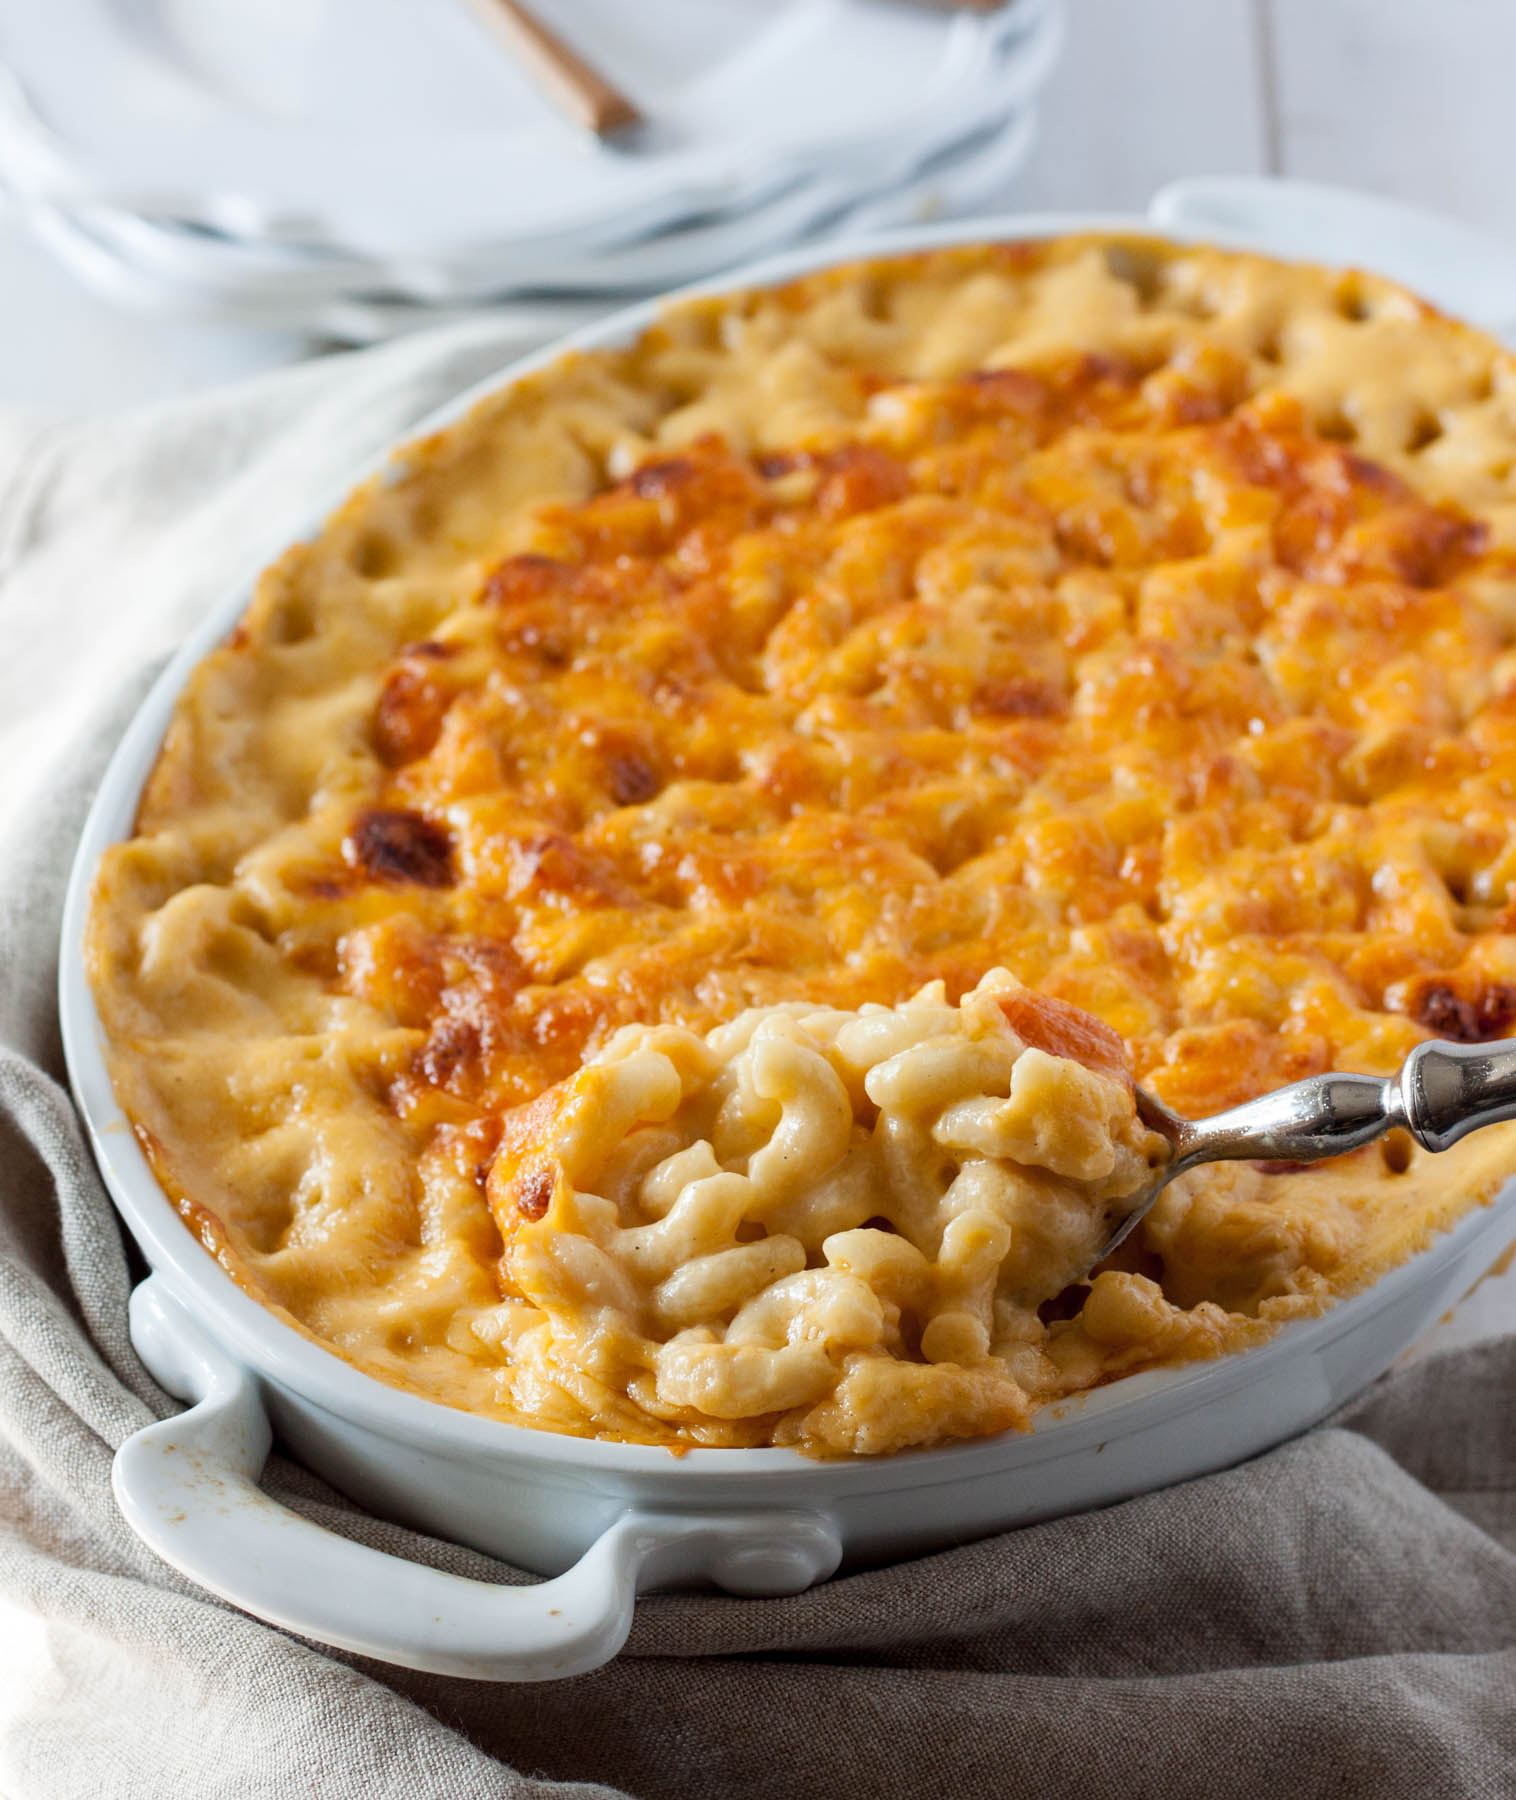 15 Mac And Cheese Recipes That Will Make Your Mouth Water